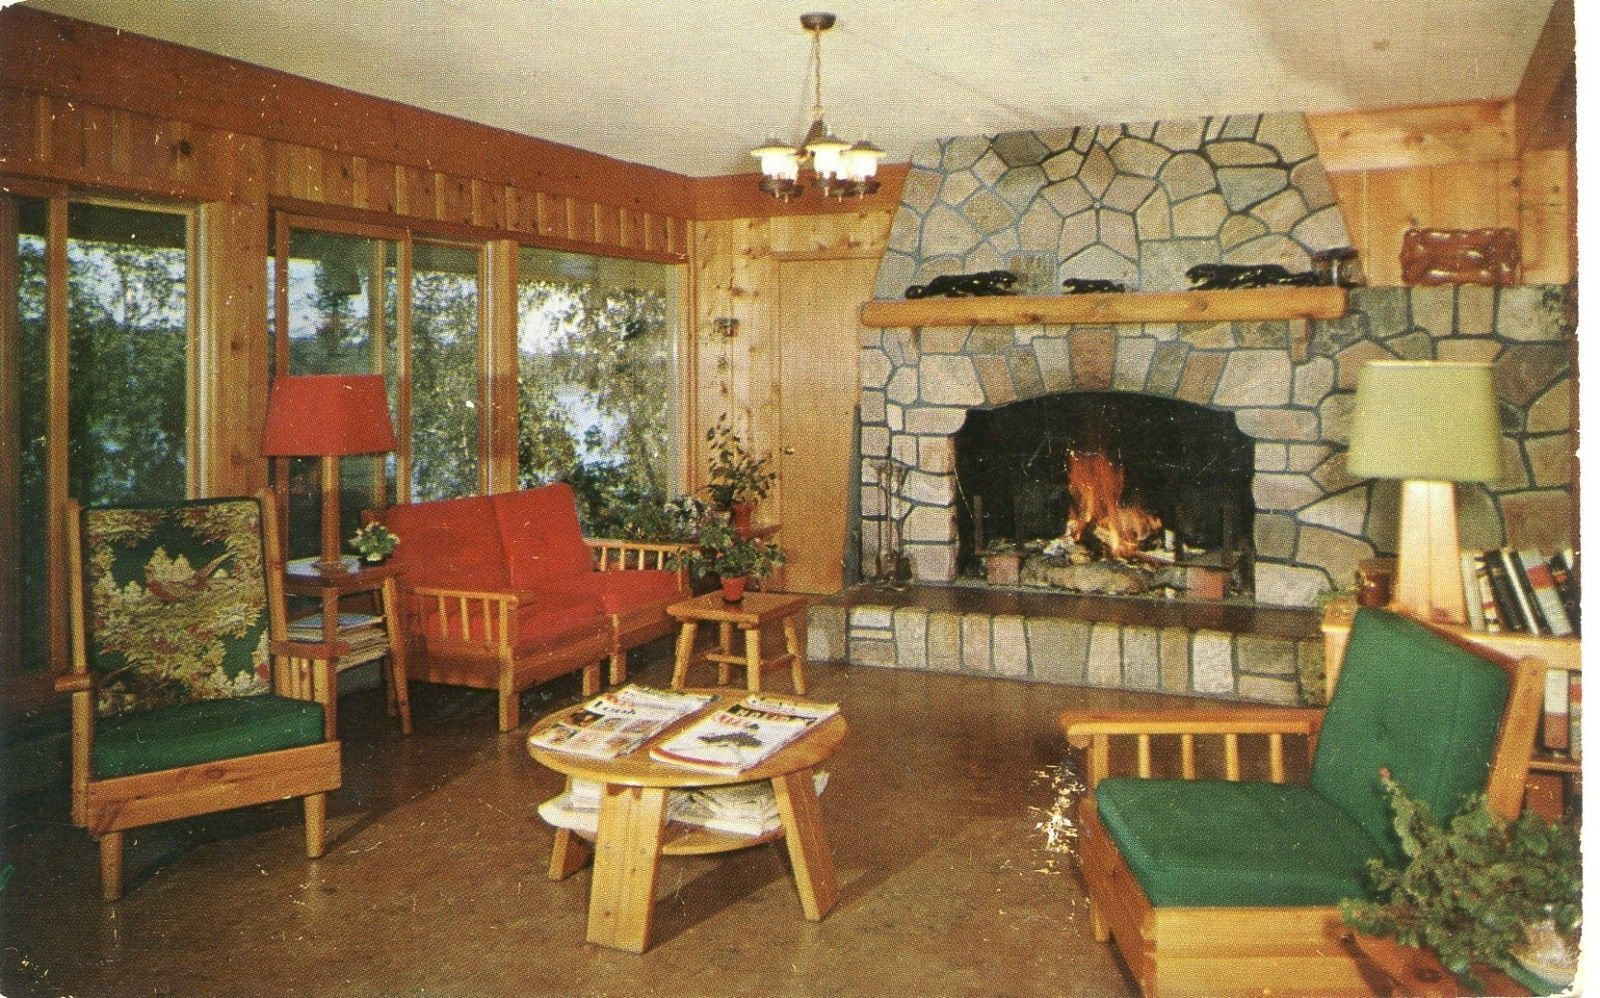 De Havens North Star Camp Lounge area in Marcell Minnesota ...